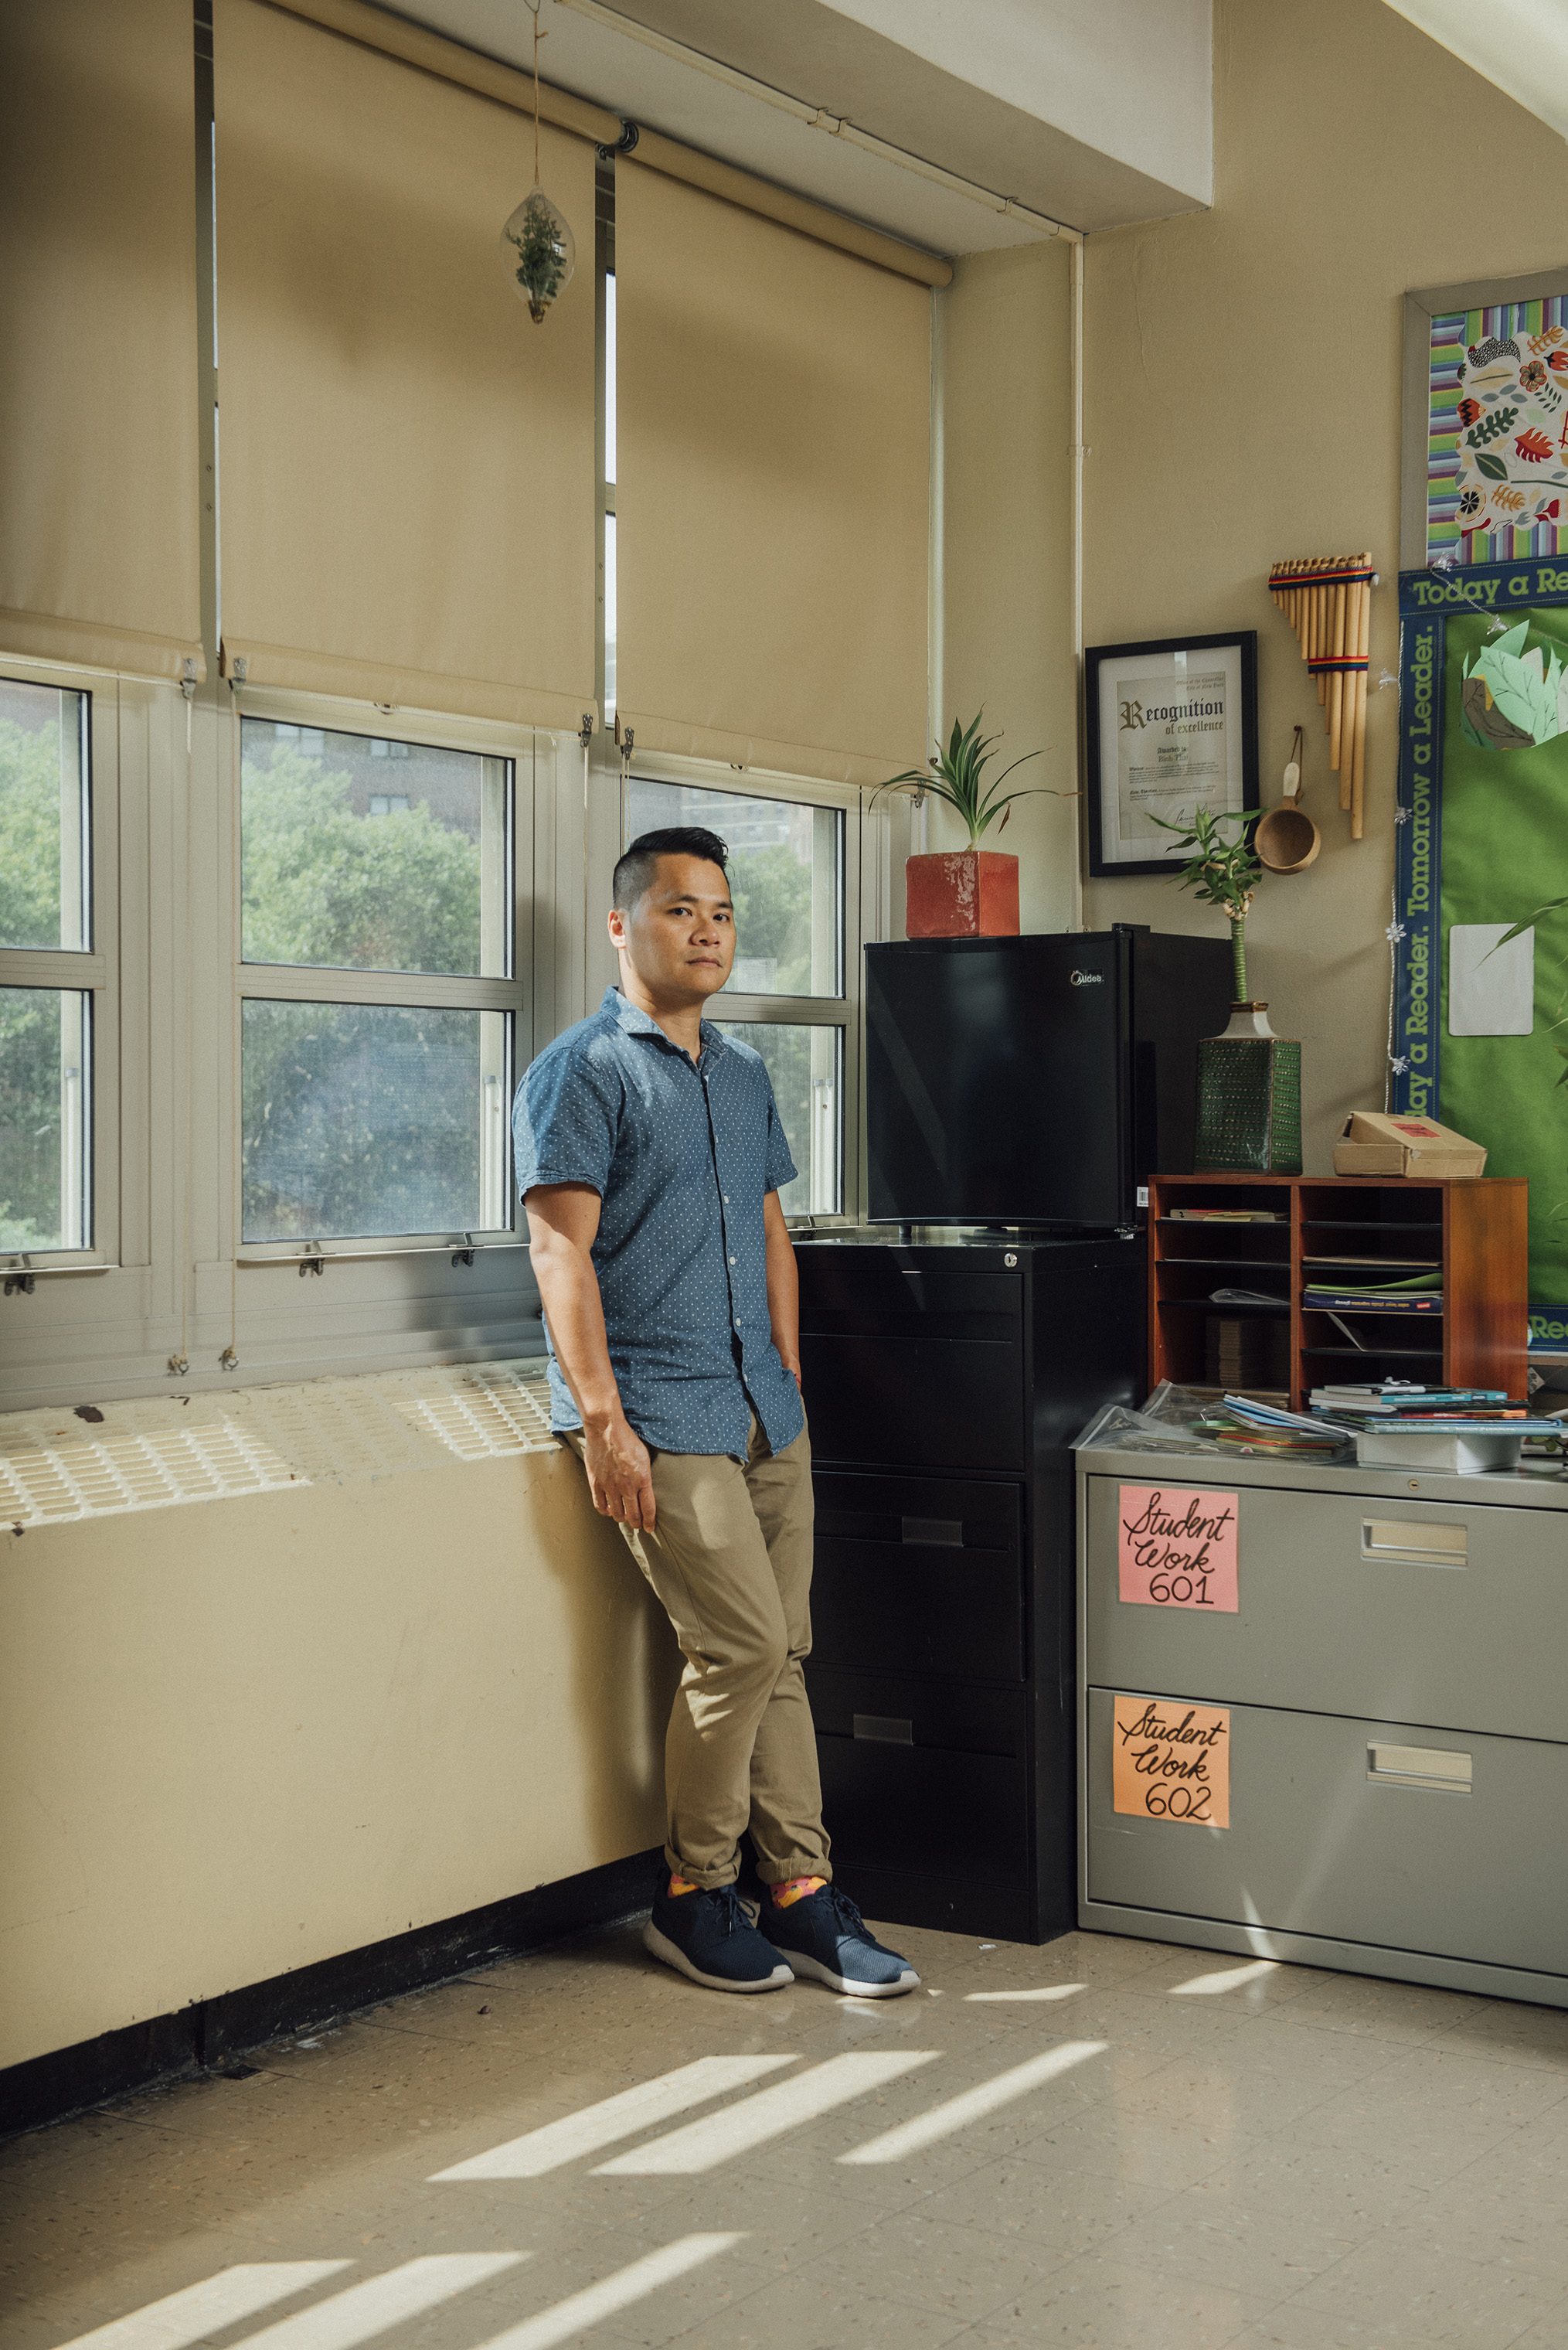 Humanities teacher Binh Thai in his classroom at University Neighborhood Middle School in New York City on Aug. 16.